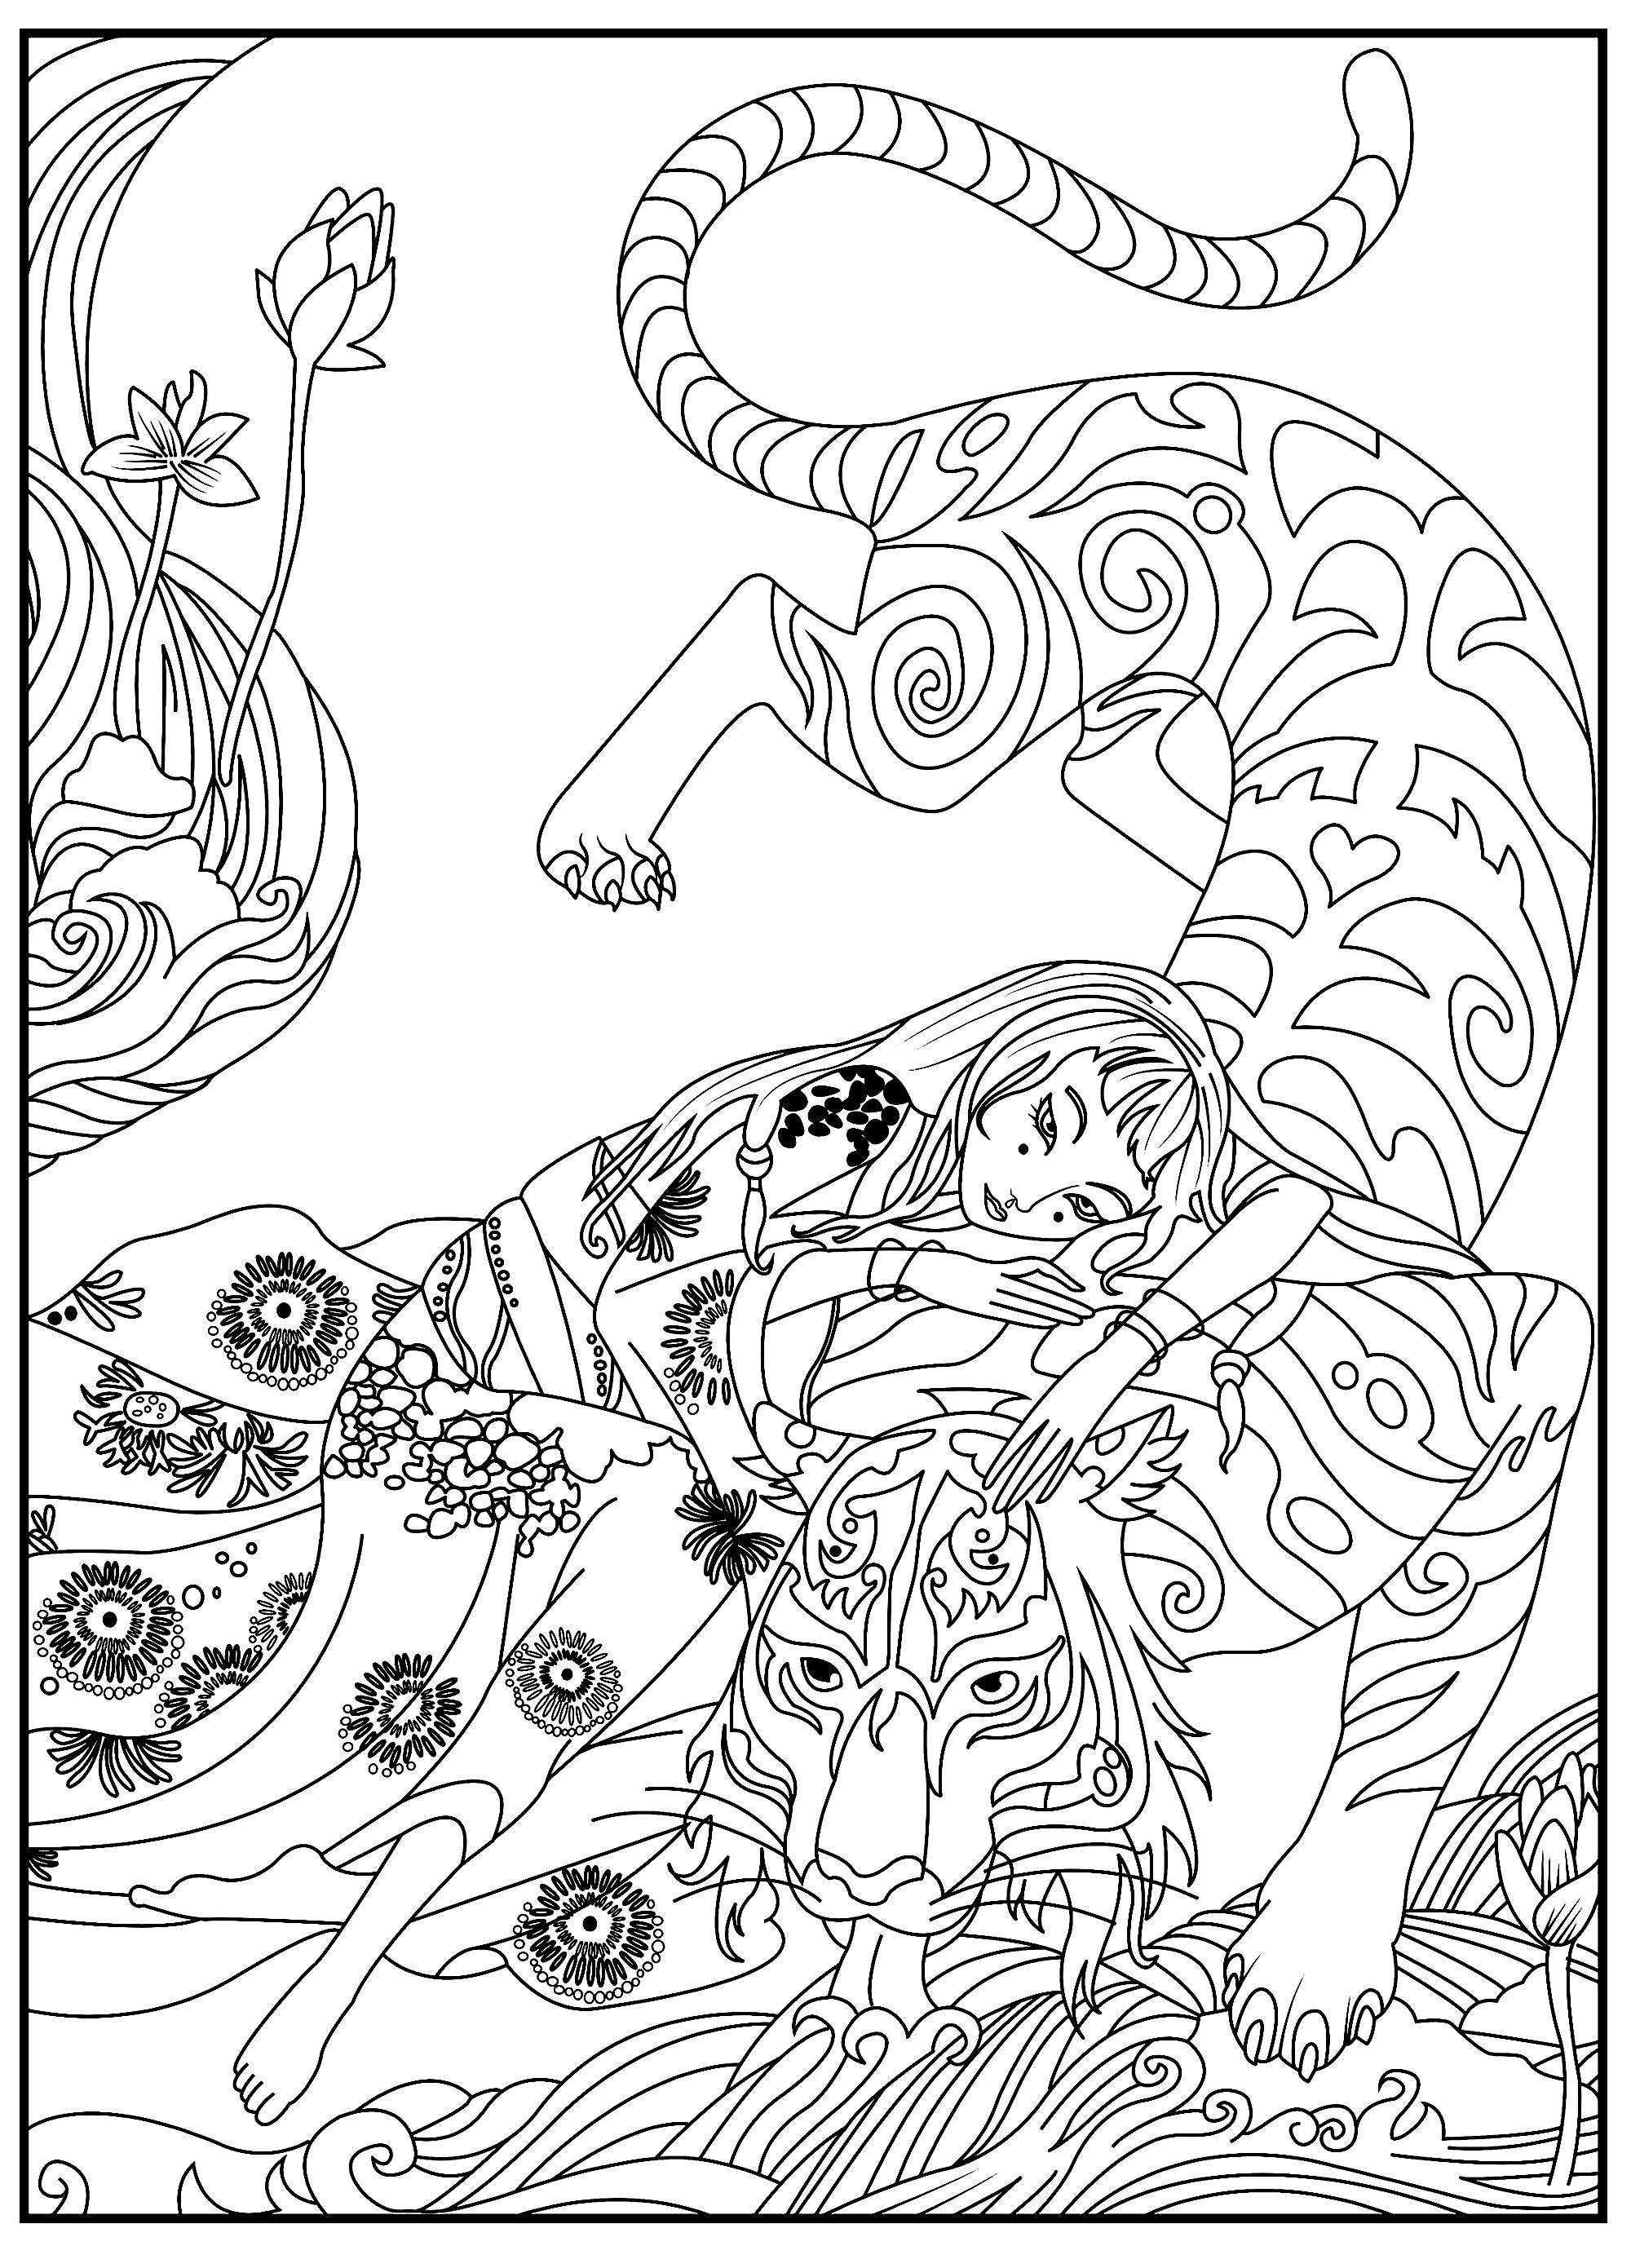 Tigers free to color for kids - Tigers Kids Coloring Pages